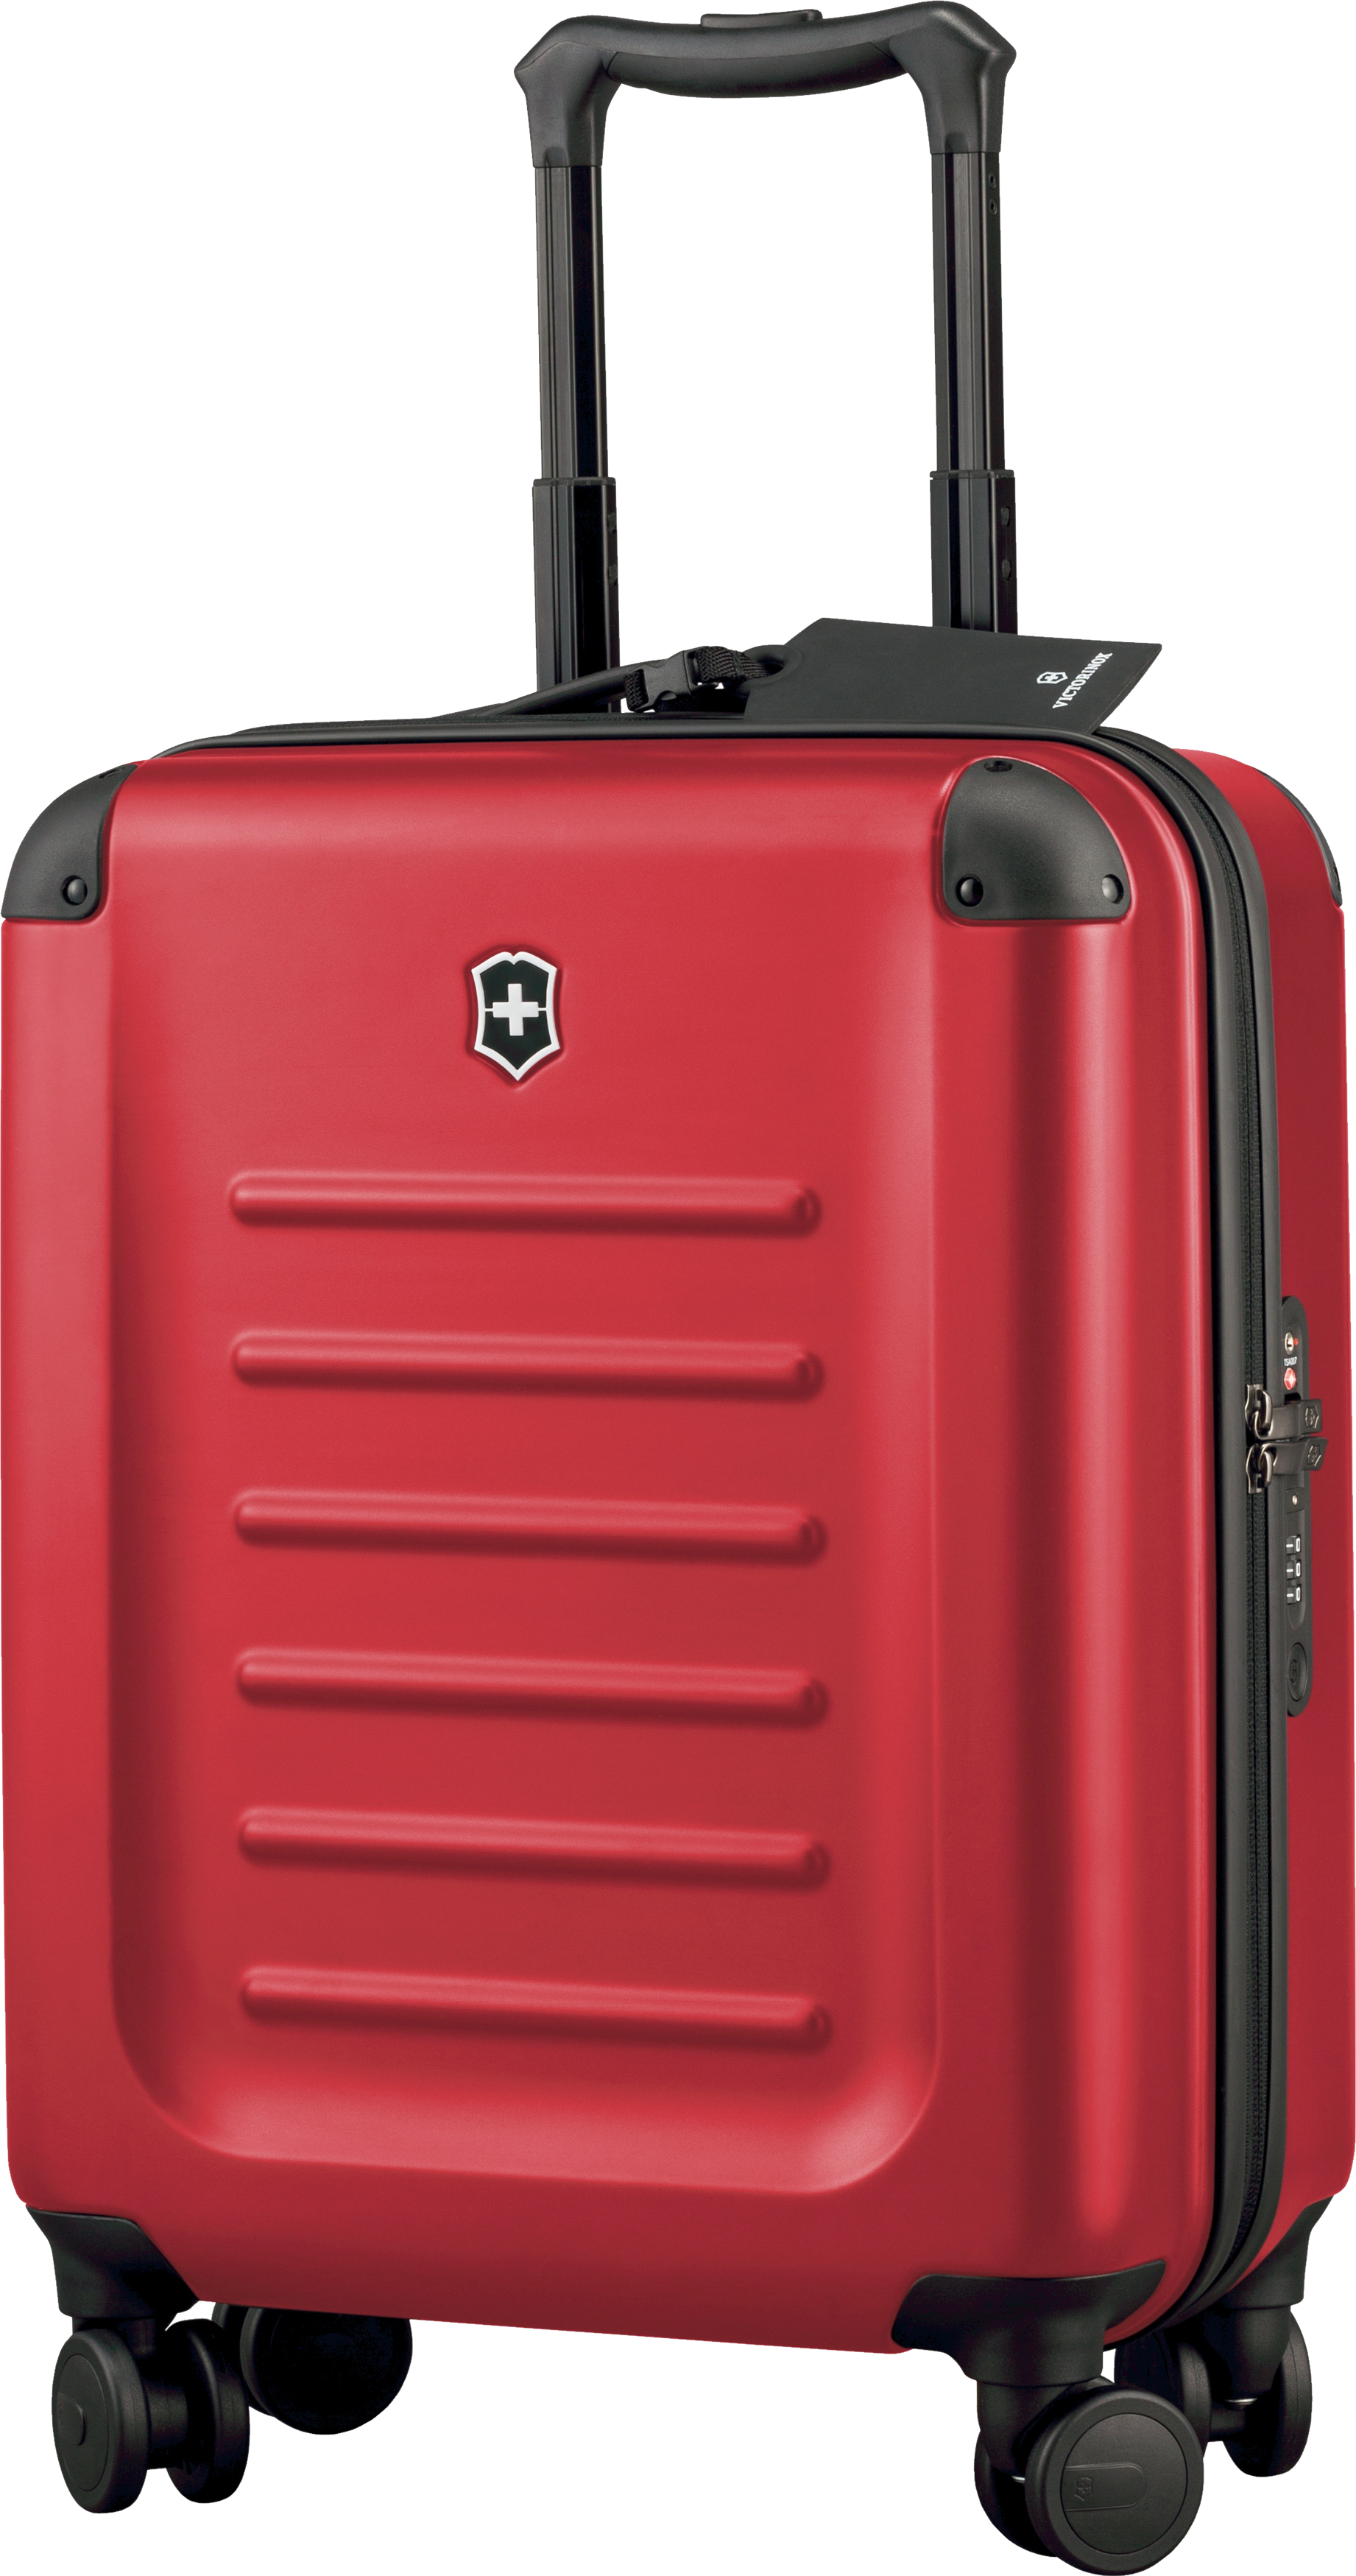 Luggage PNG image - Luggage PNG